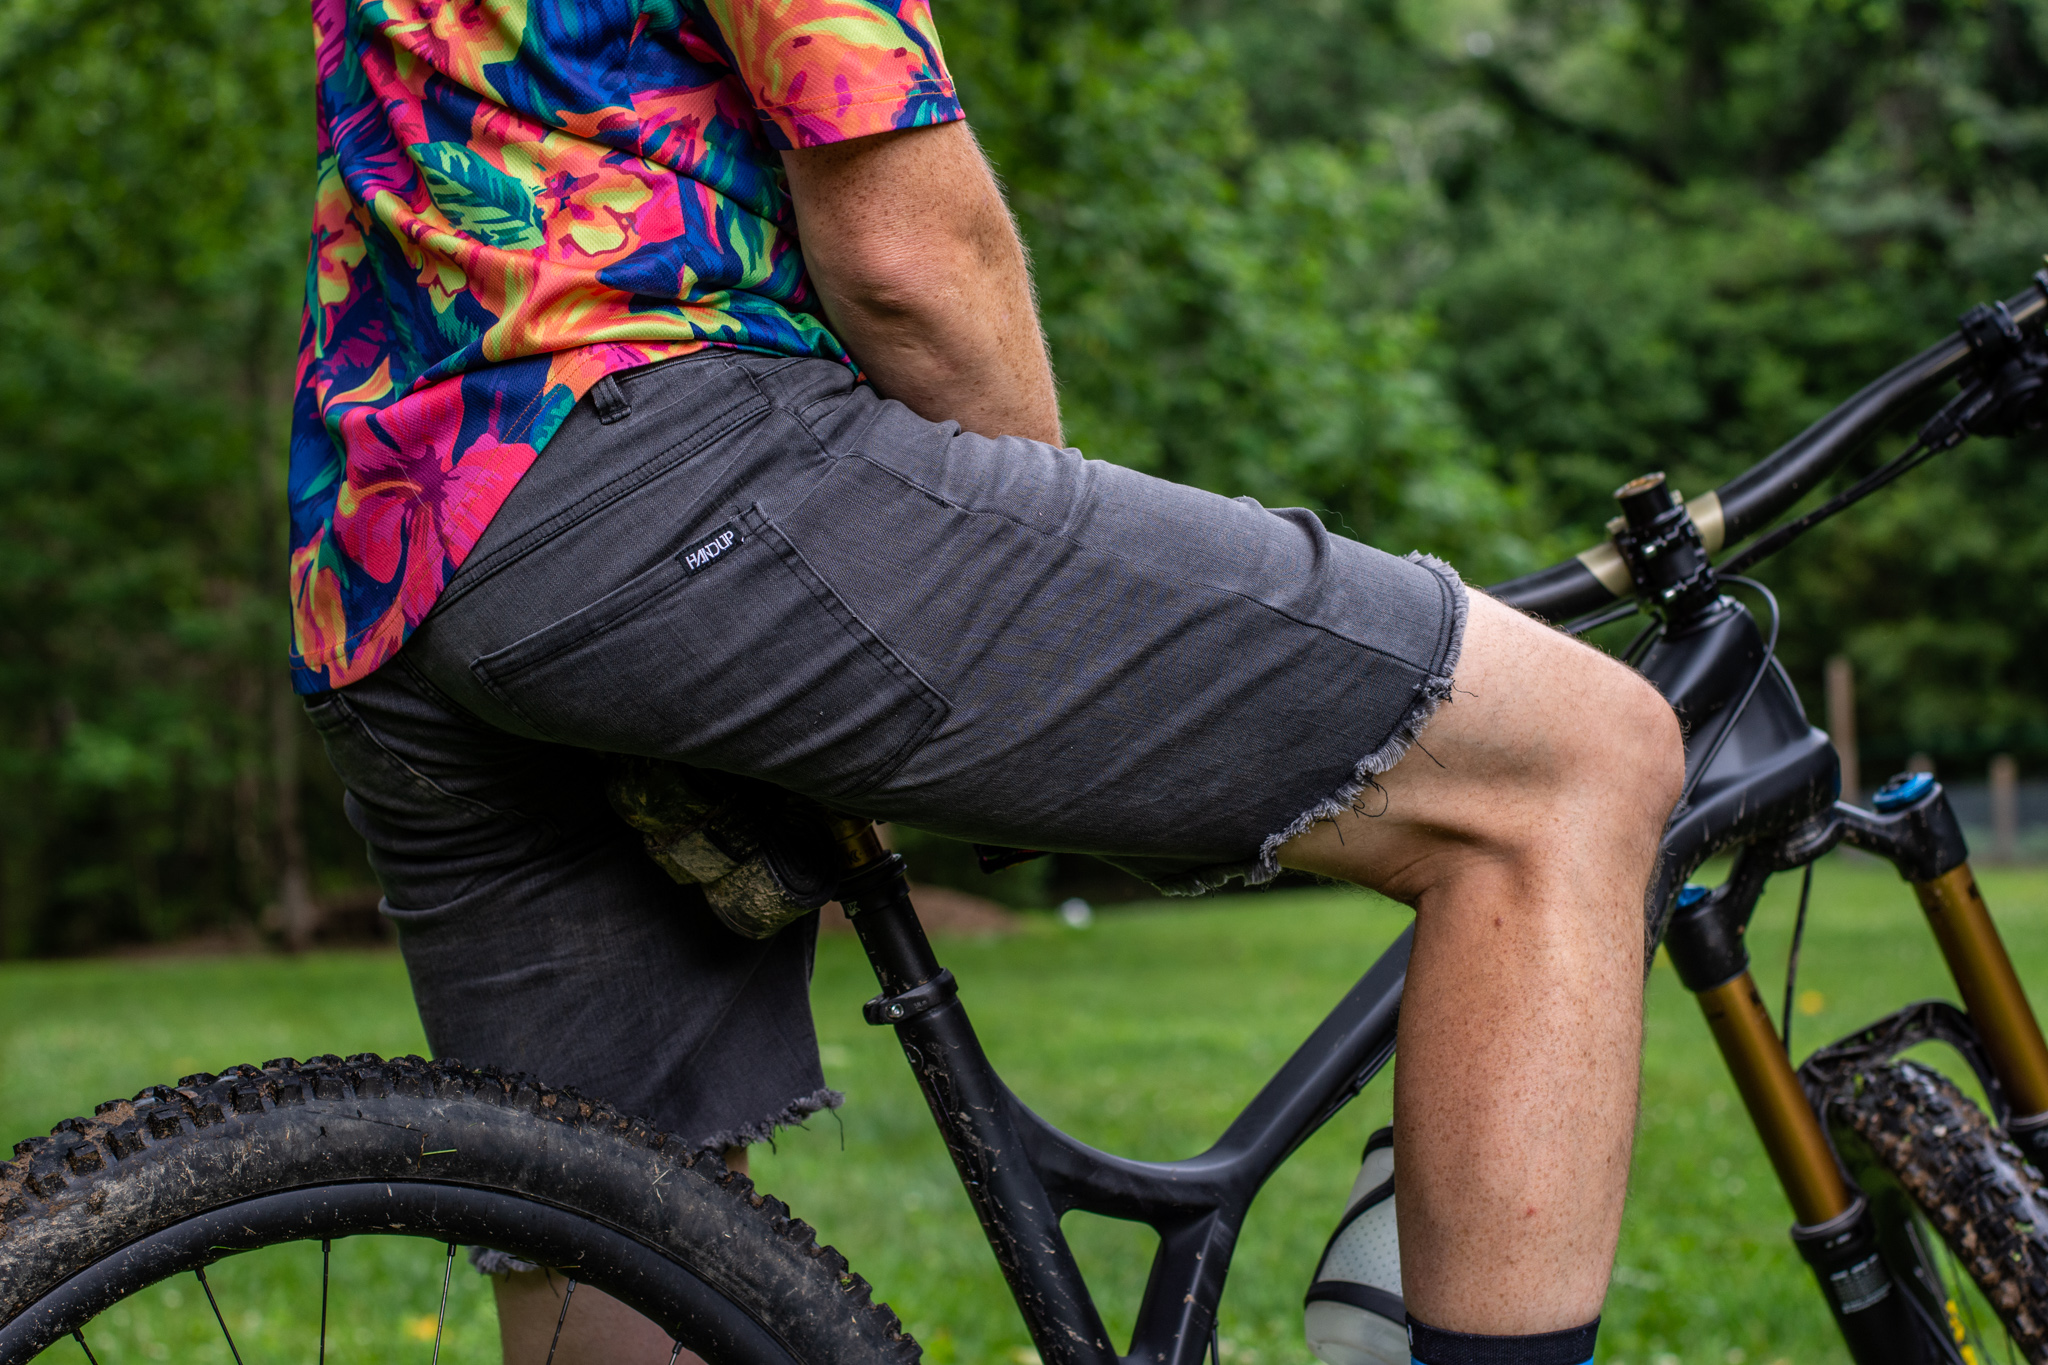 Handup just jumped into the performance jorts game. The post Handup Now Has Their Own Version of Performance Jorts appeared first on Singletracks Mountain Bike News.